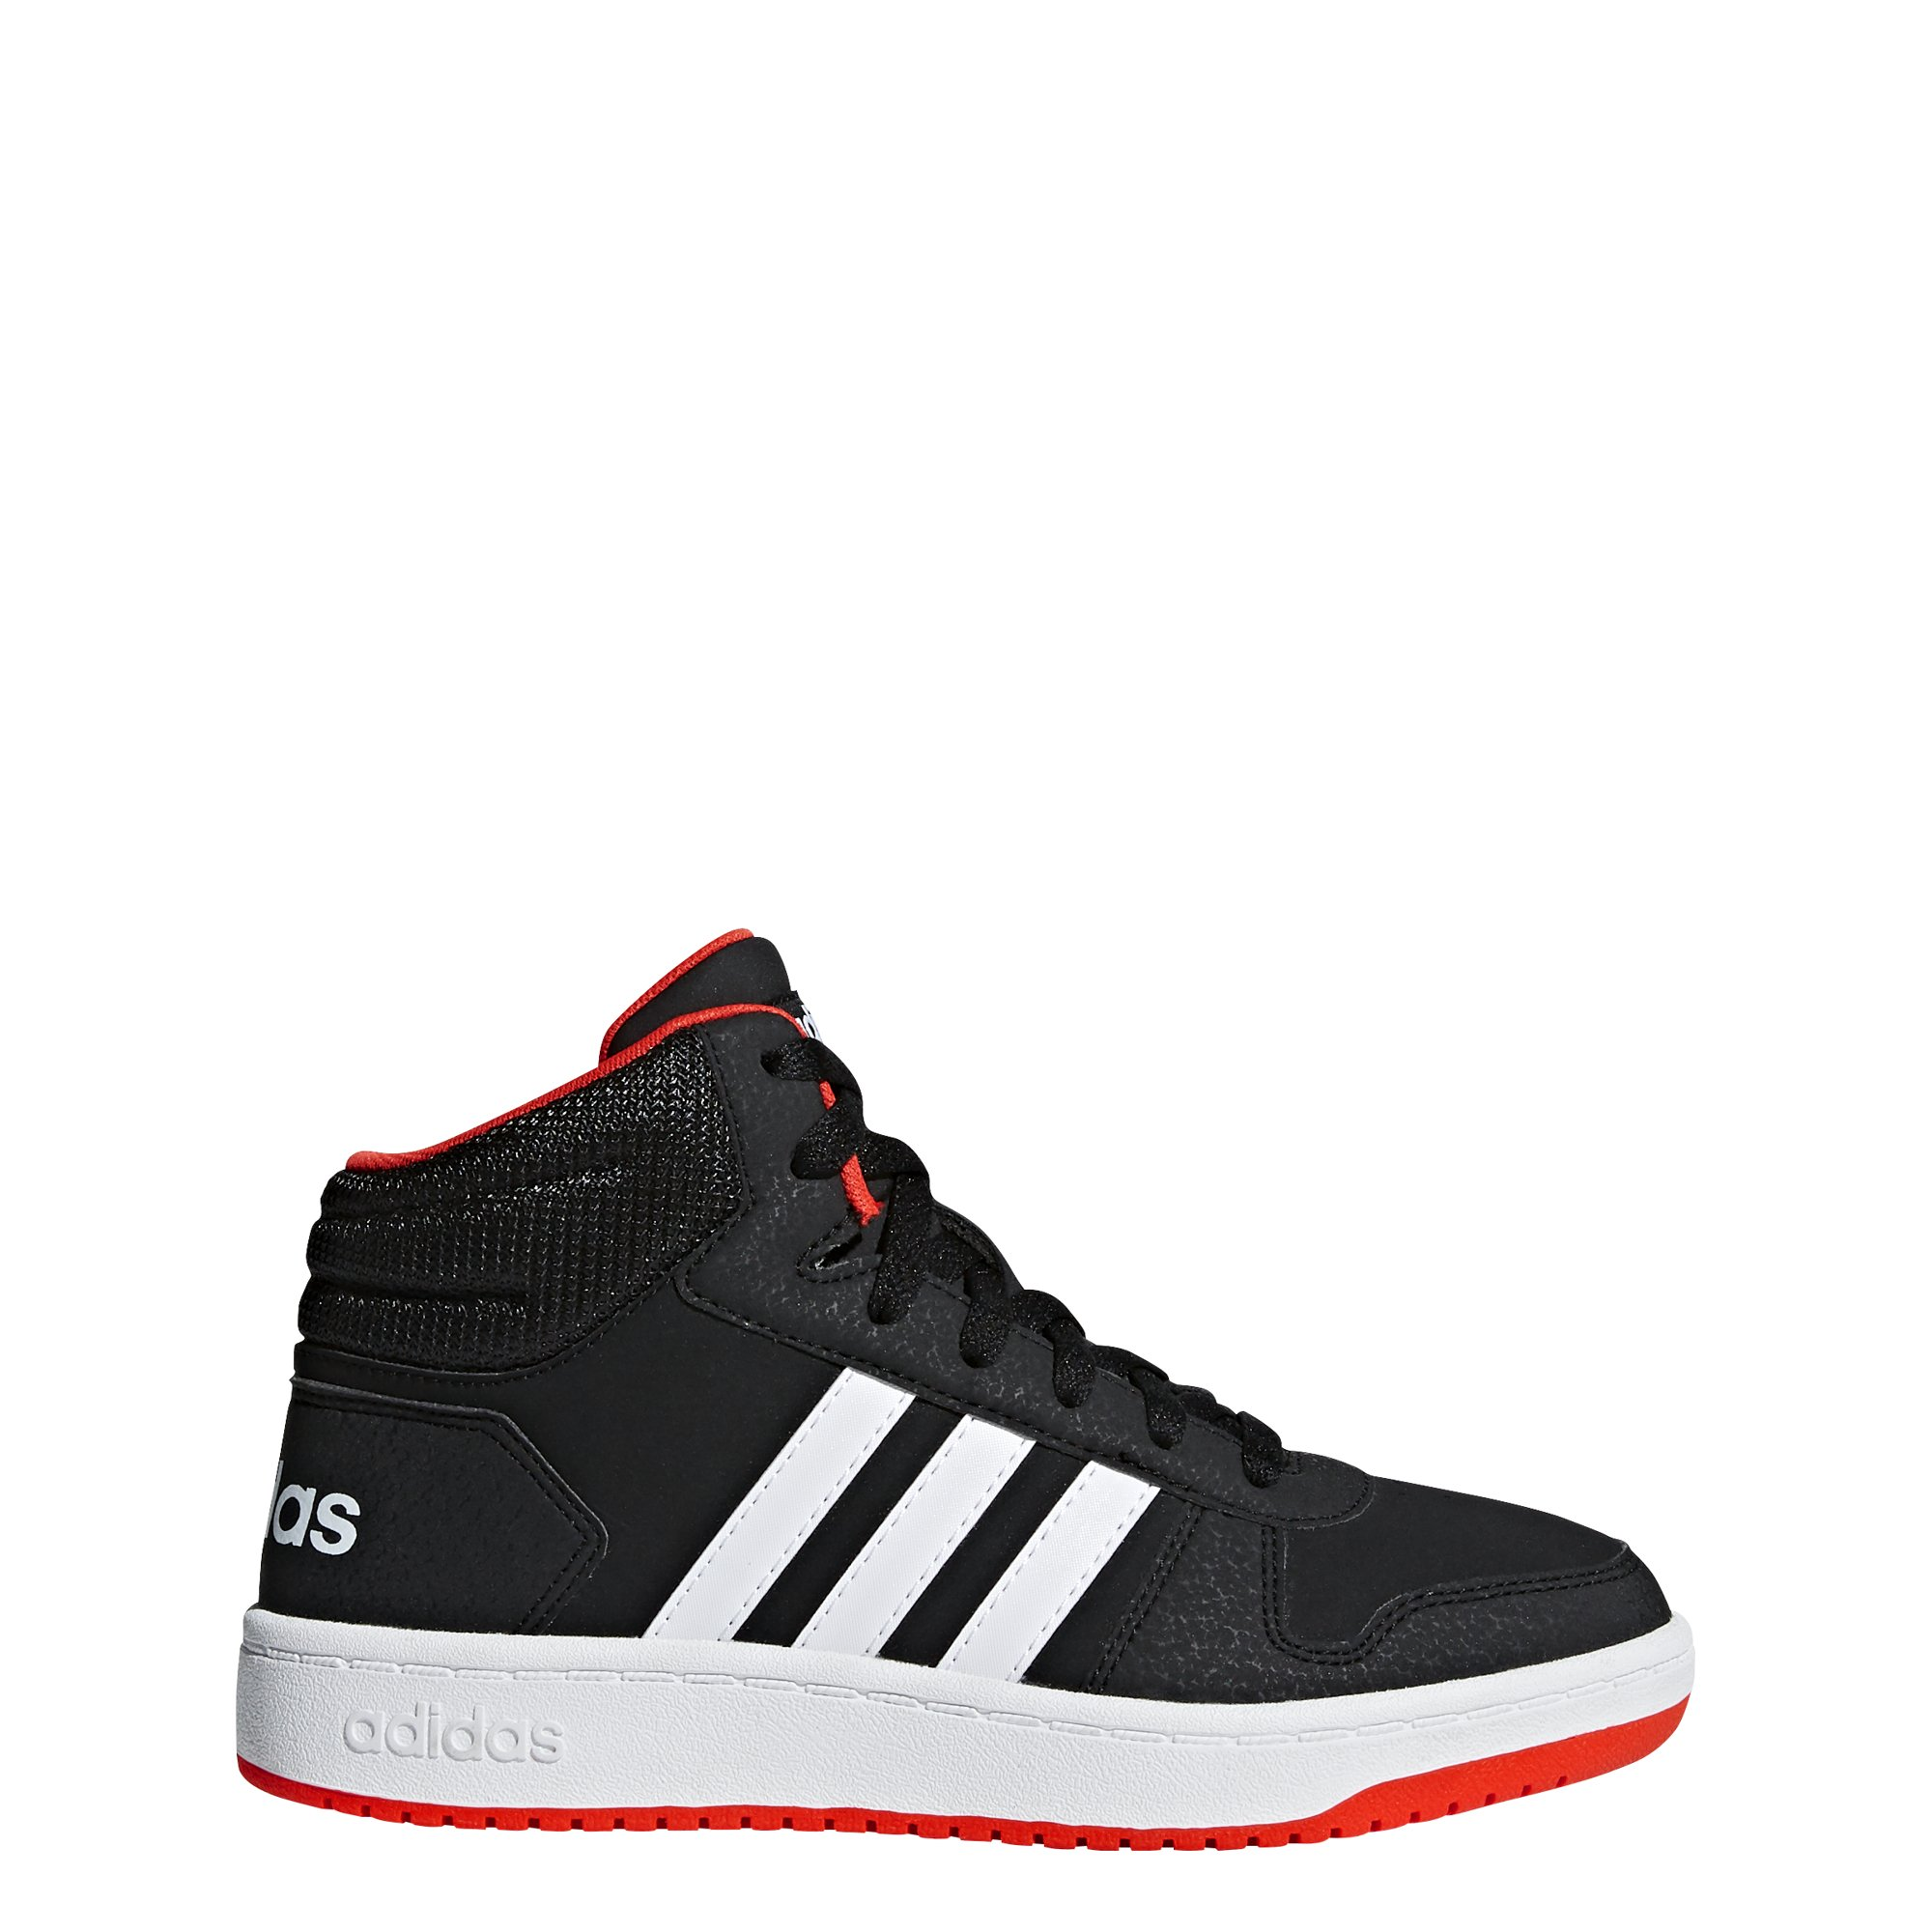 adidas Unisex Hoops 2.0 Basketball Shoe, Black/White/red, 5.5 M US Big Kid